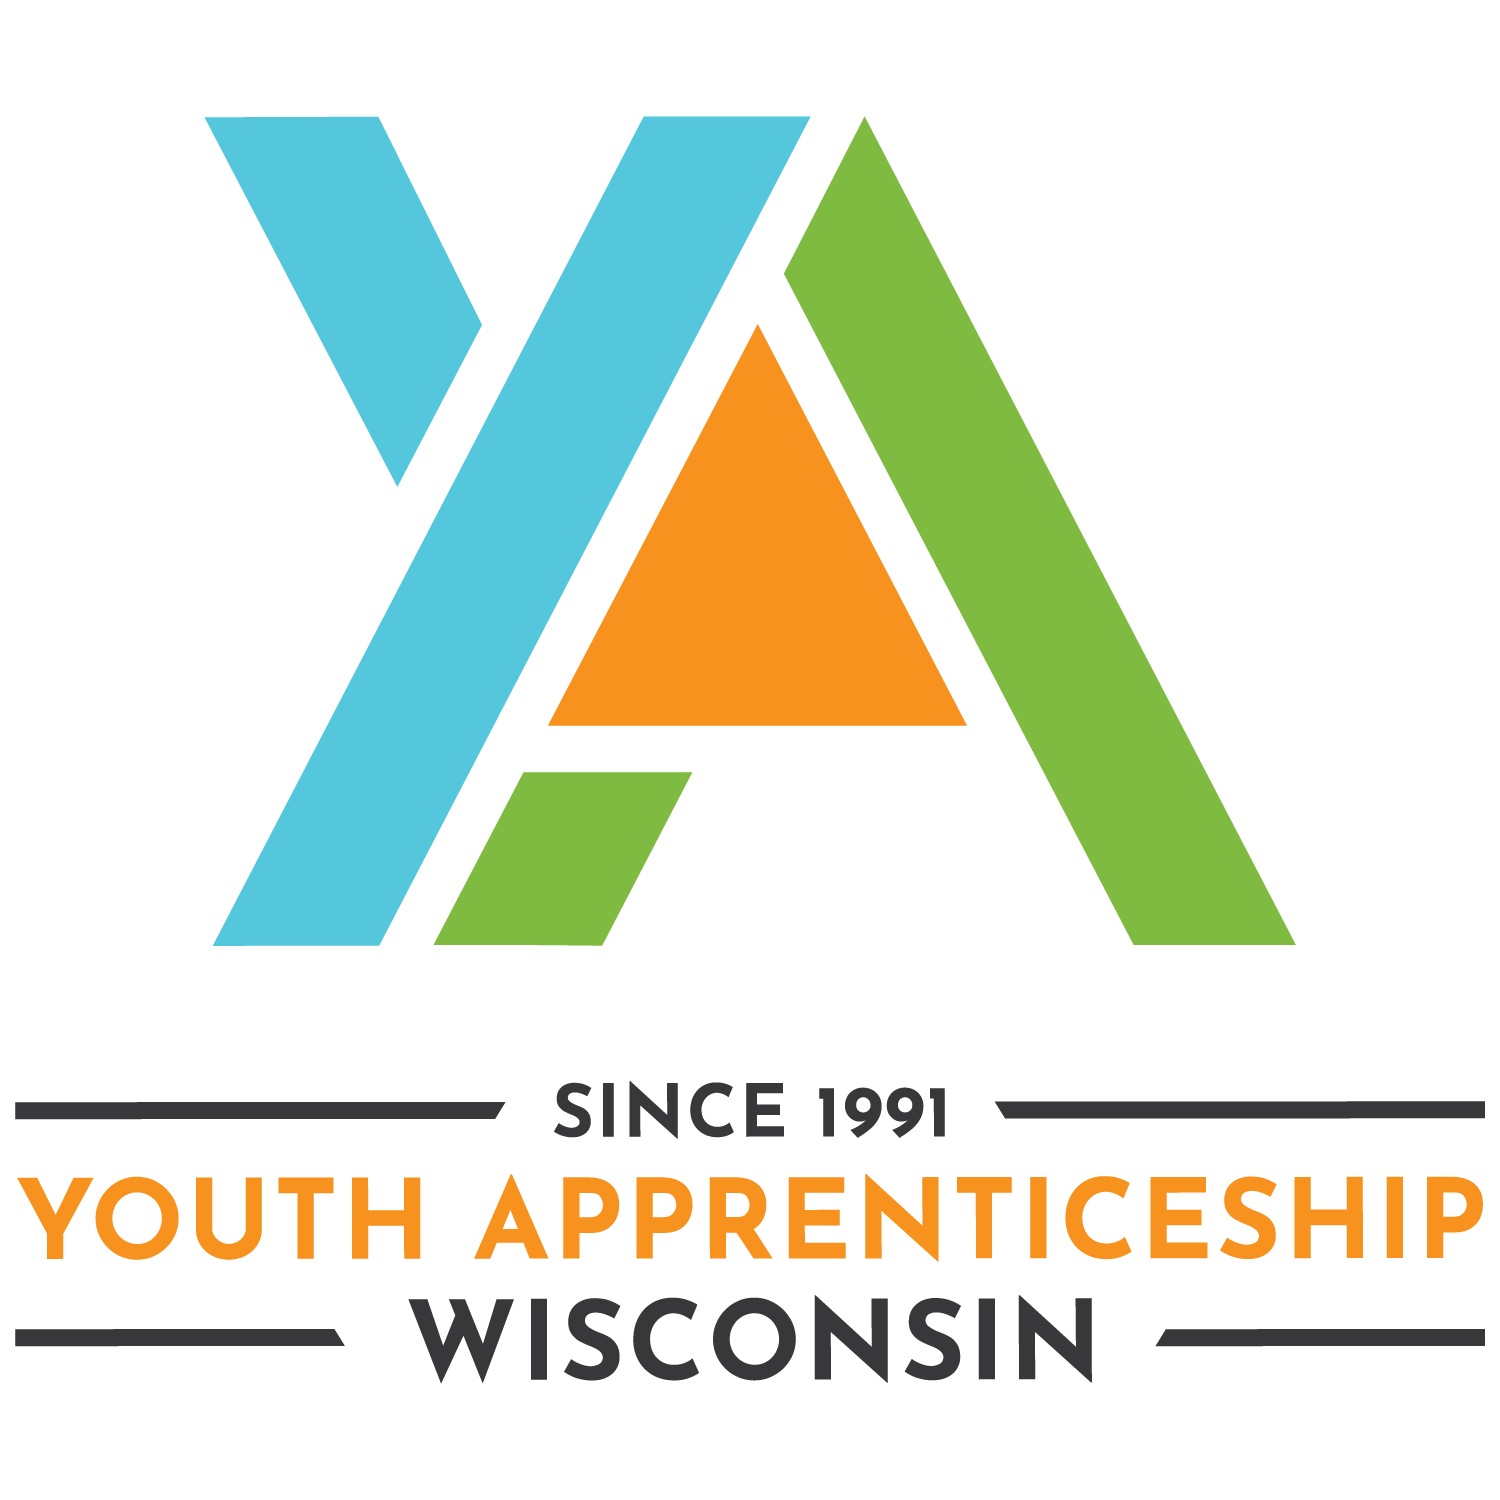 SINCE 1991 - YOUTH APPRENTICESHIP WISCONSIN LOGO